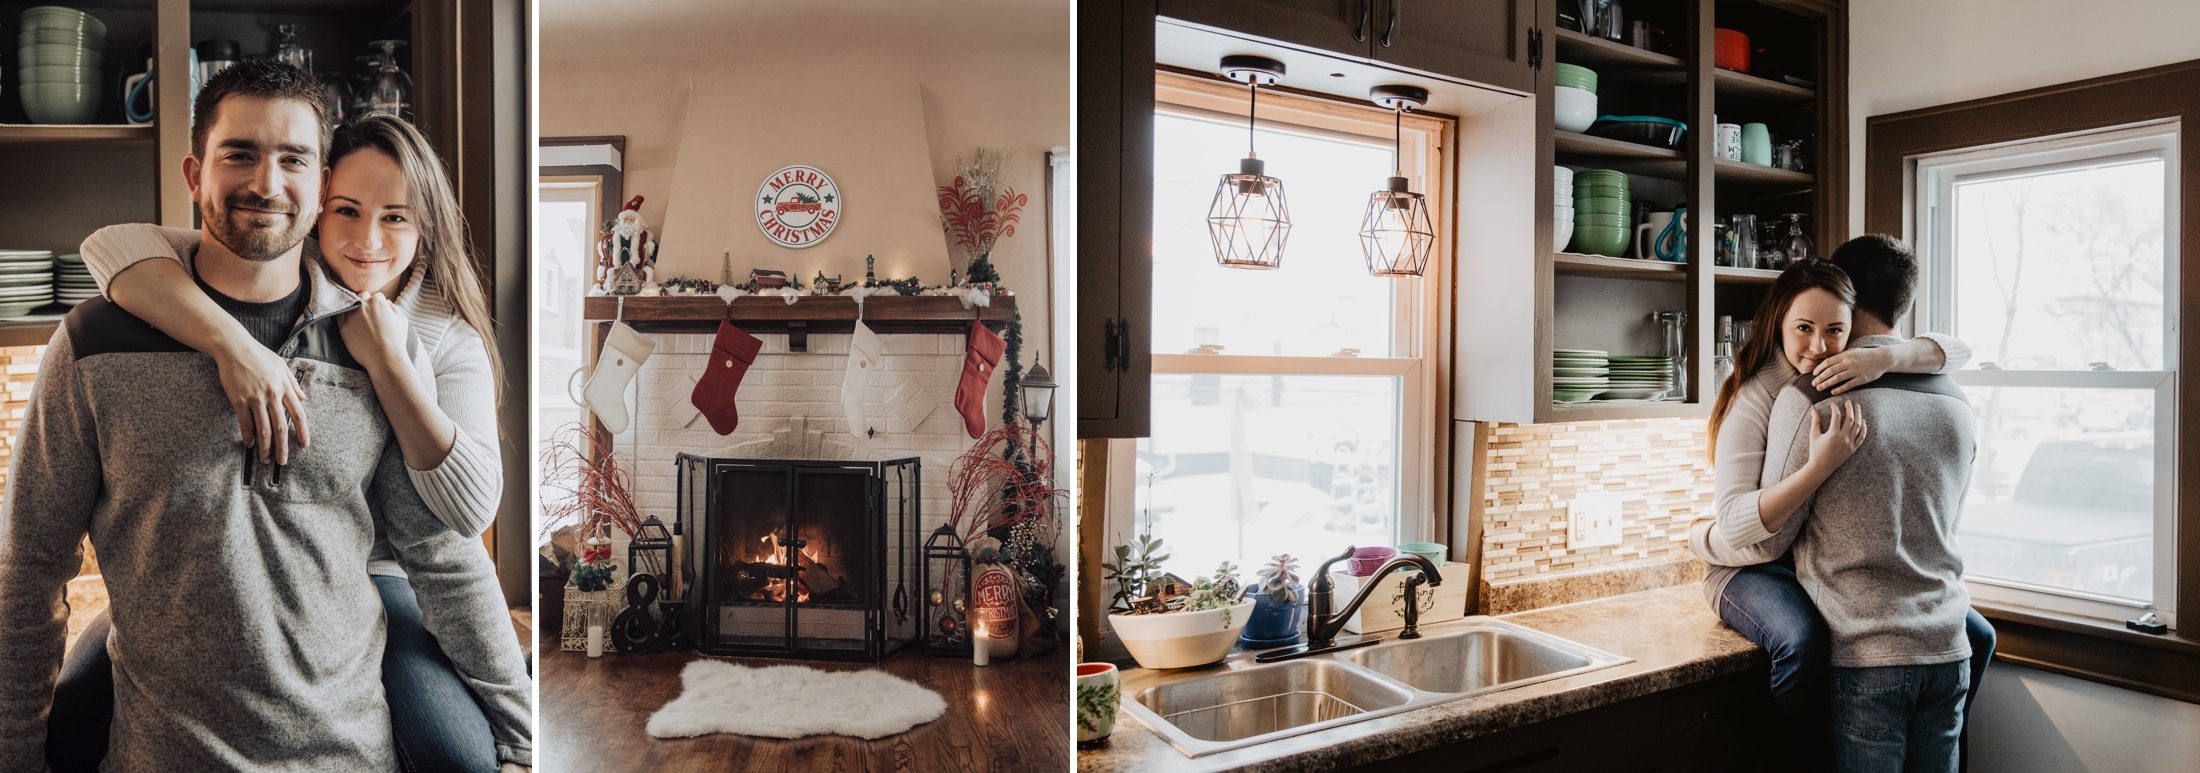 Kate's first home in Wisconsin | KLEM Studios